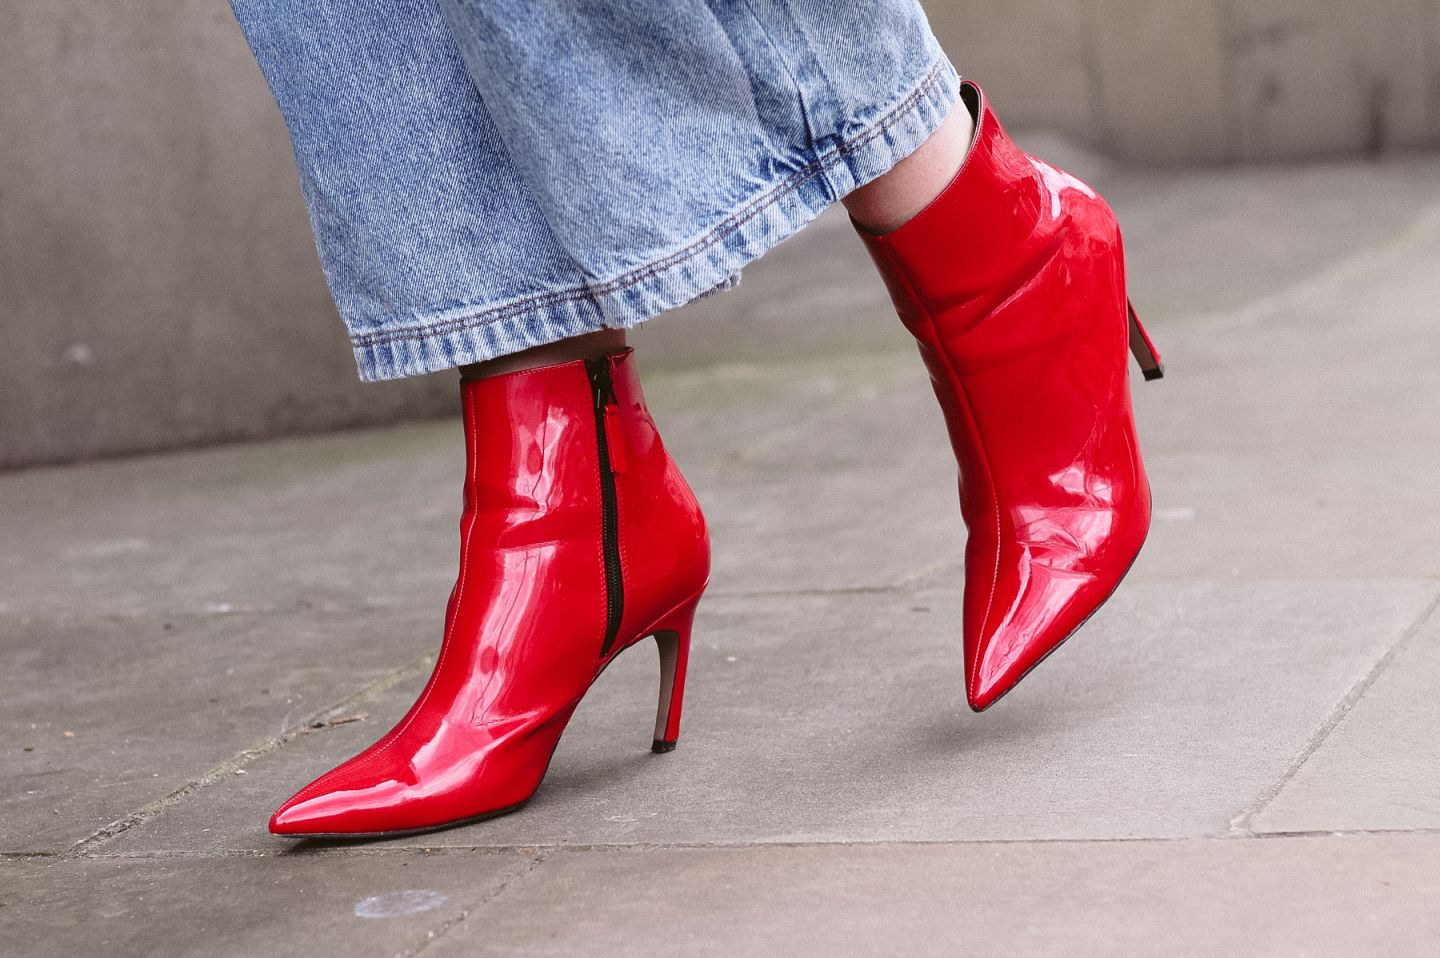 london fashion week street style trends red latex boots